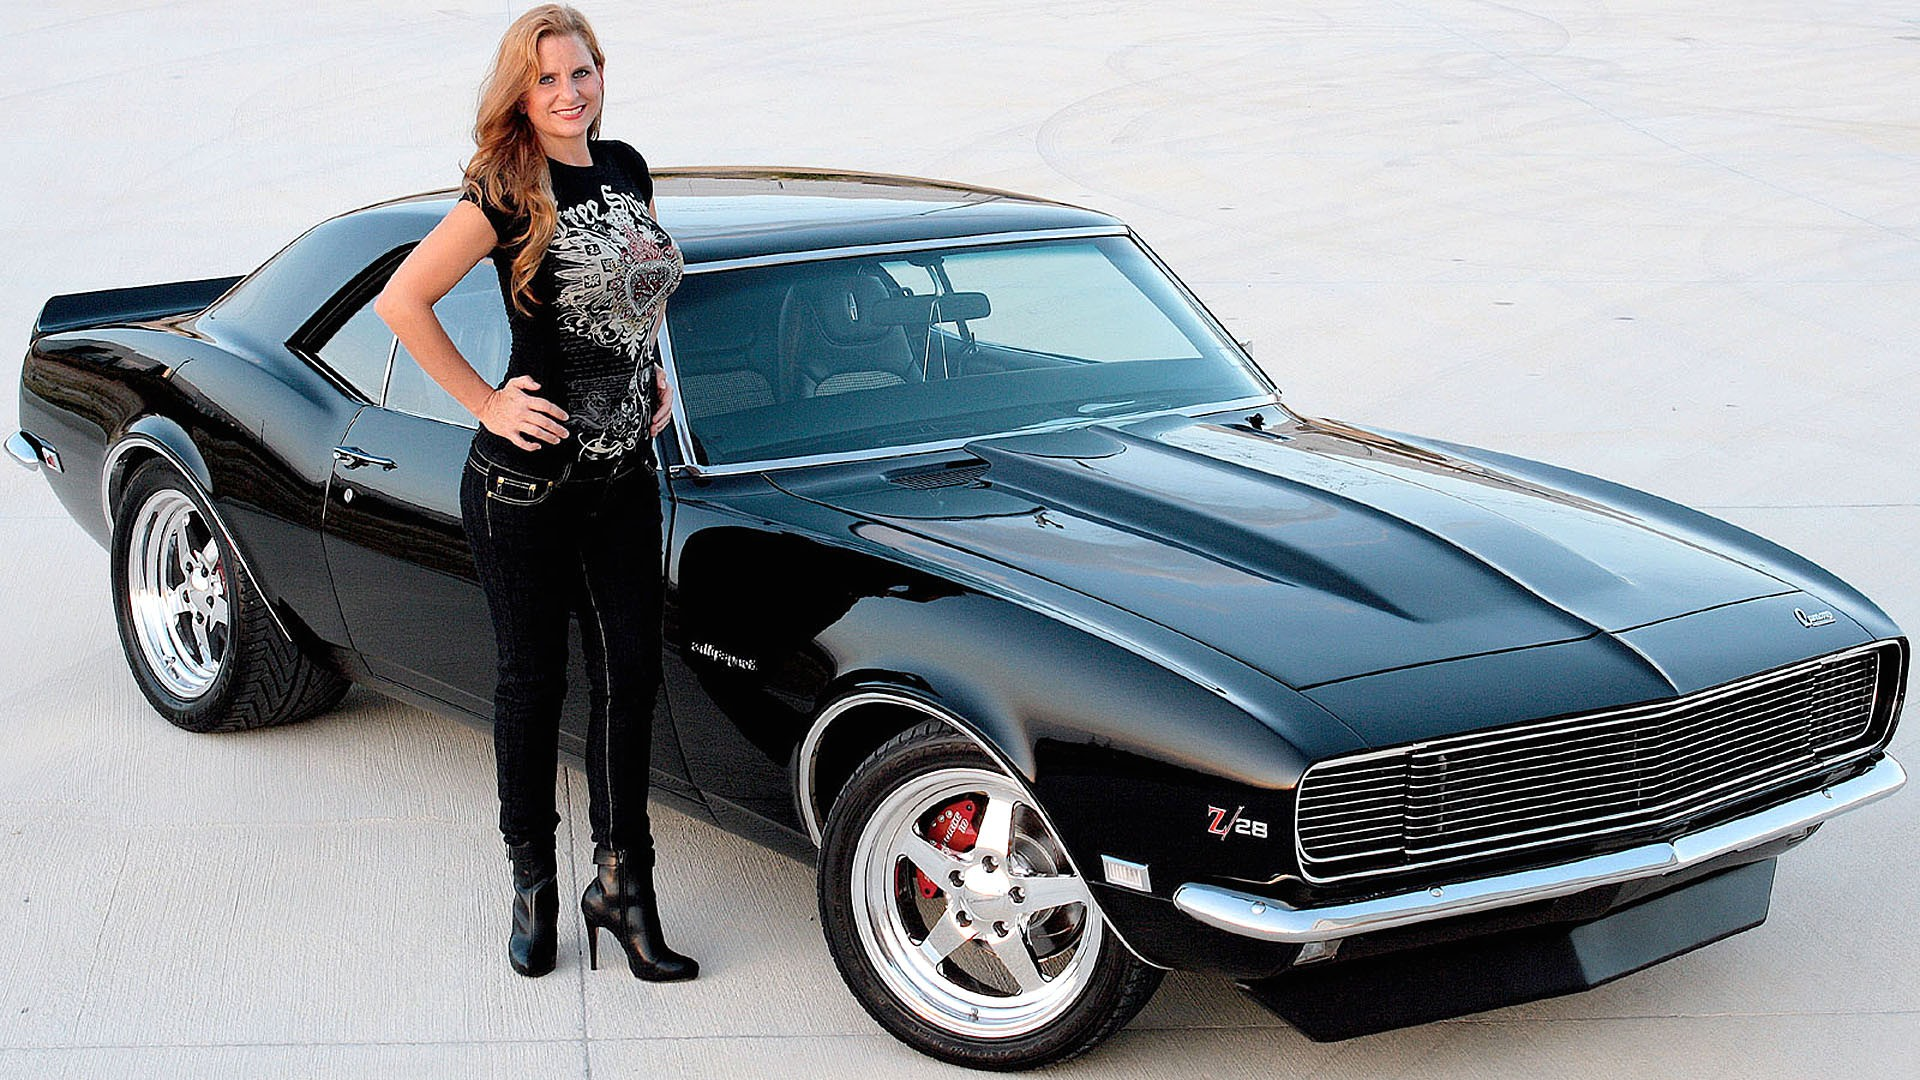 41 girls and muscle cars wallpaper on wallpapersafari - Pictures of muscle cars ...